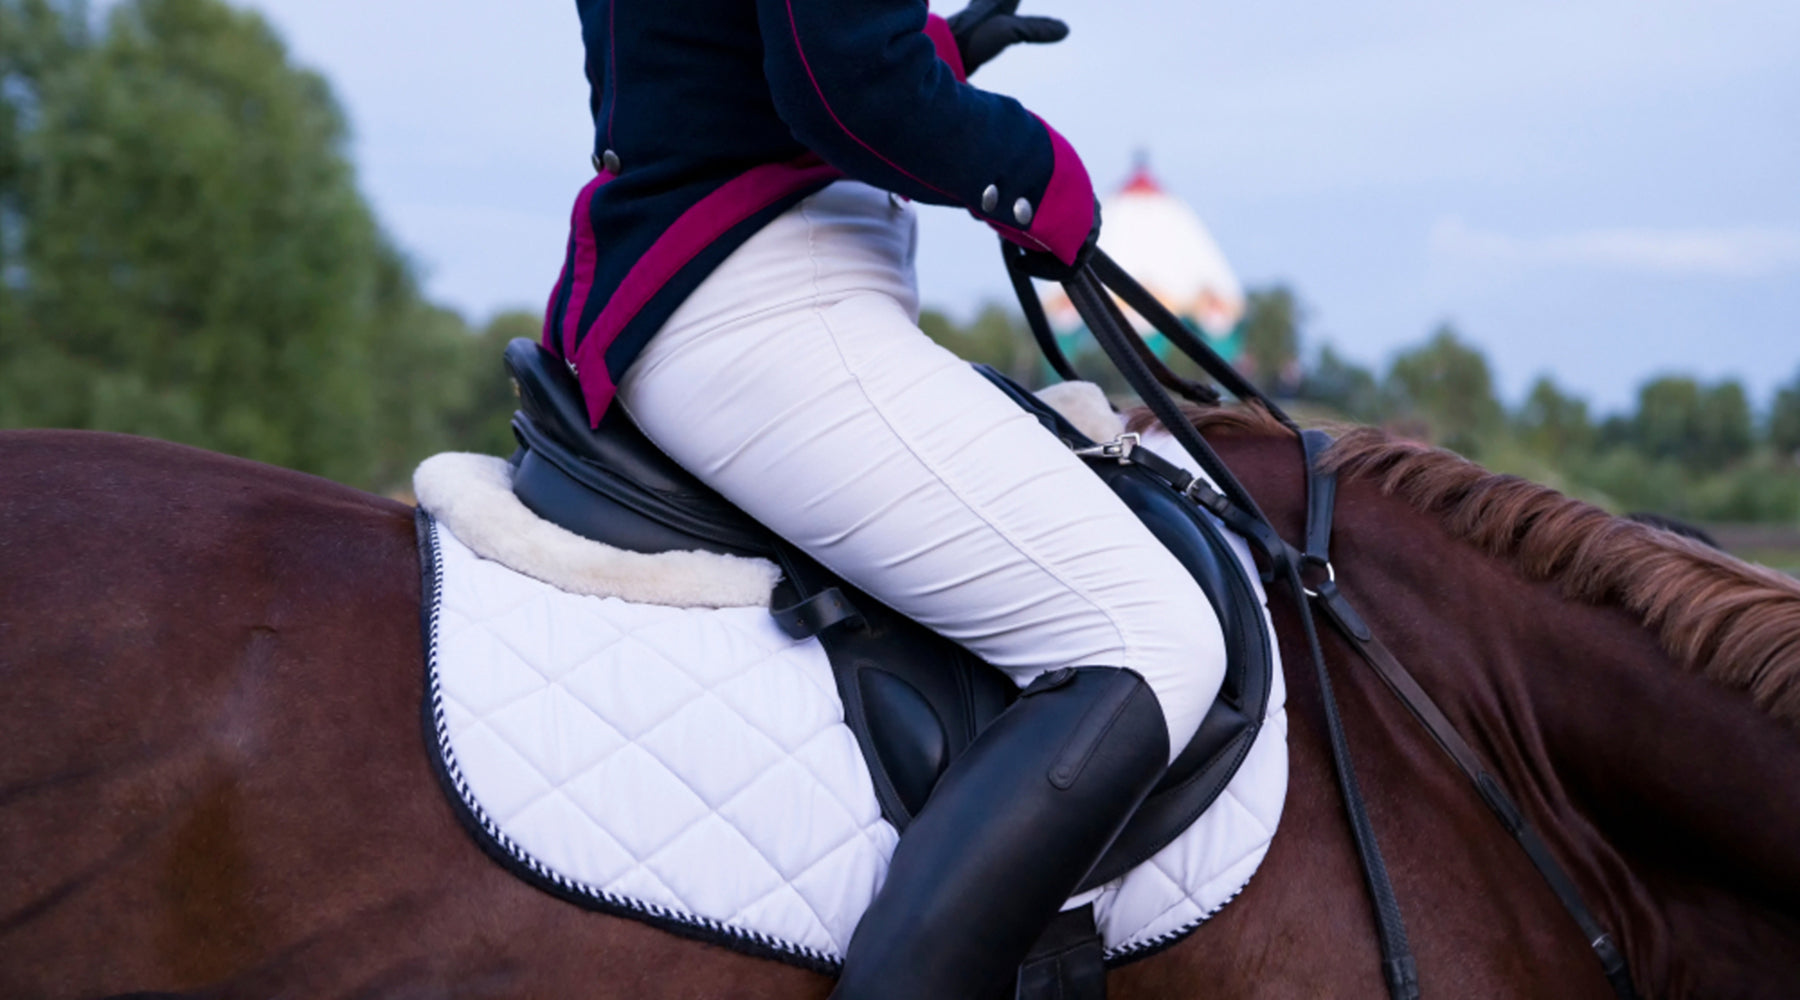 Jodhpurs Vs. Breeches, What's the Difference?